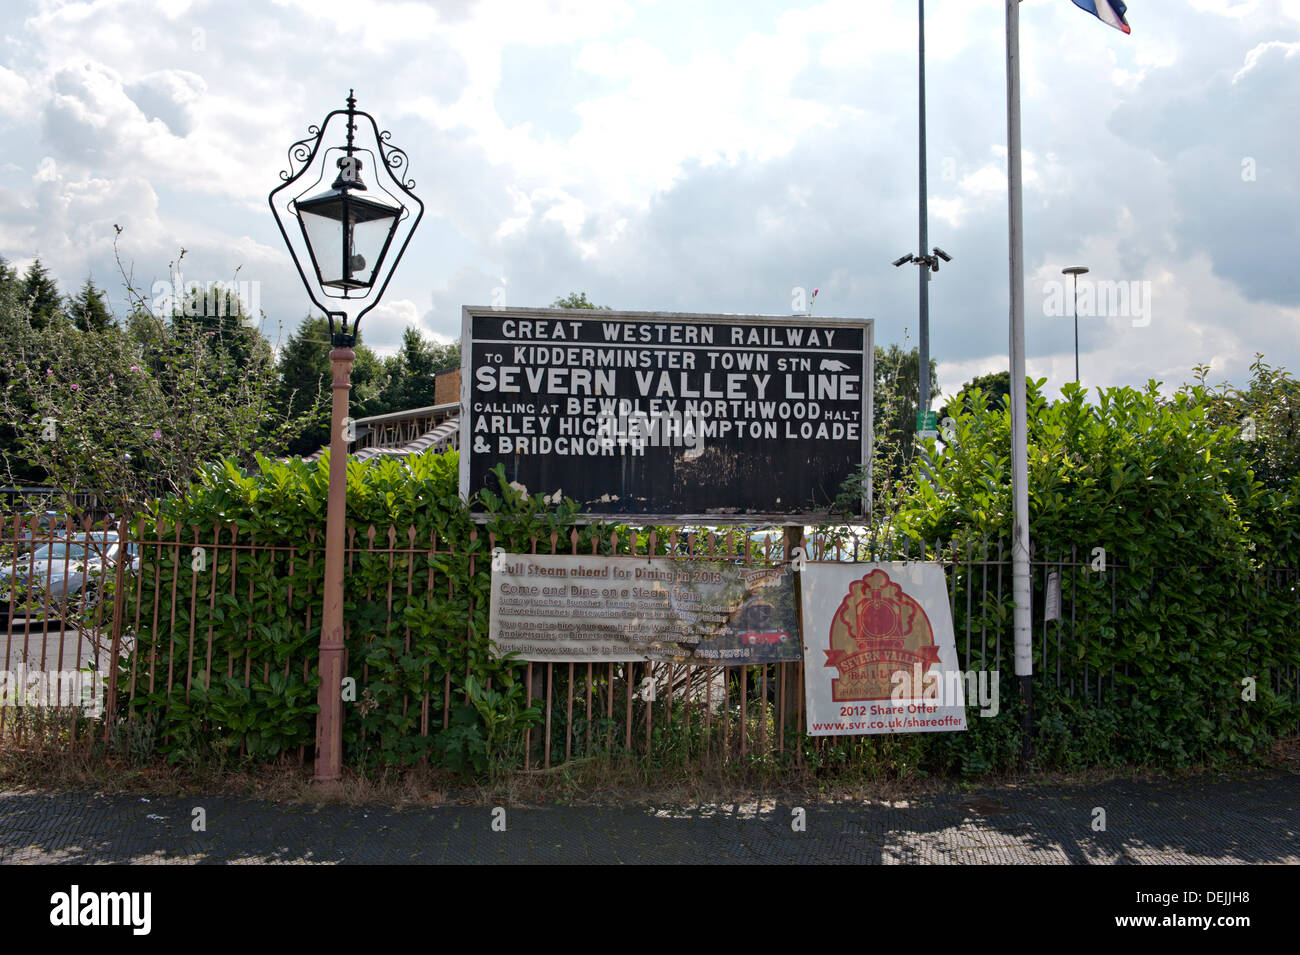 Vintage gas lamp and railway sign near Kidderminster railway